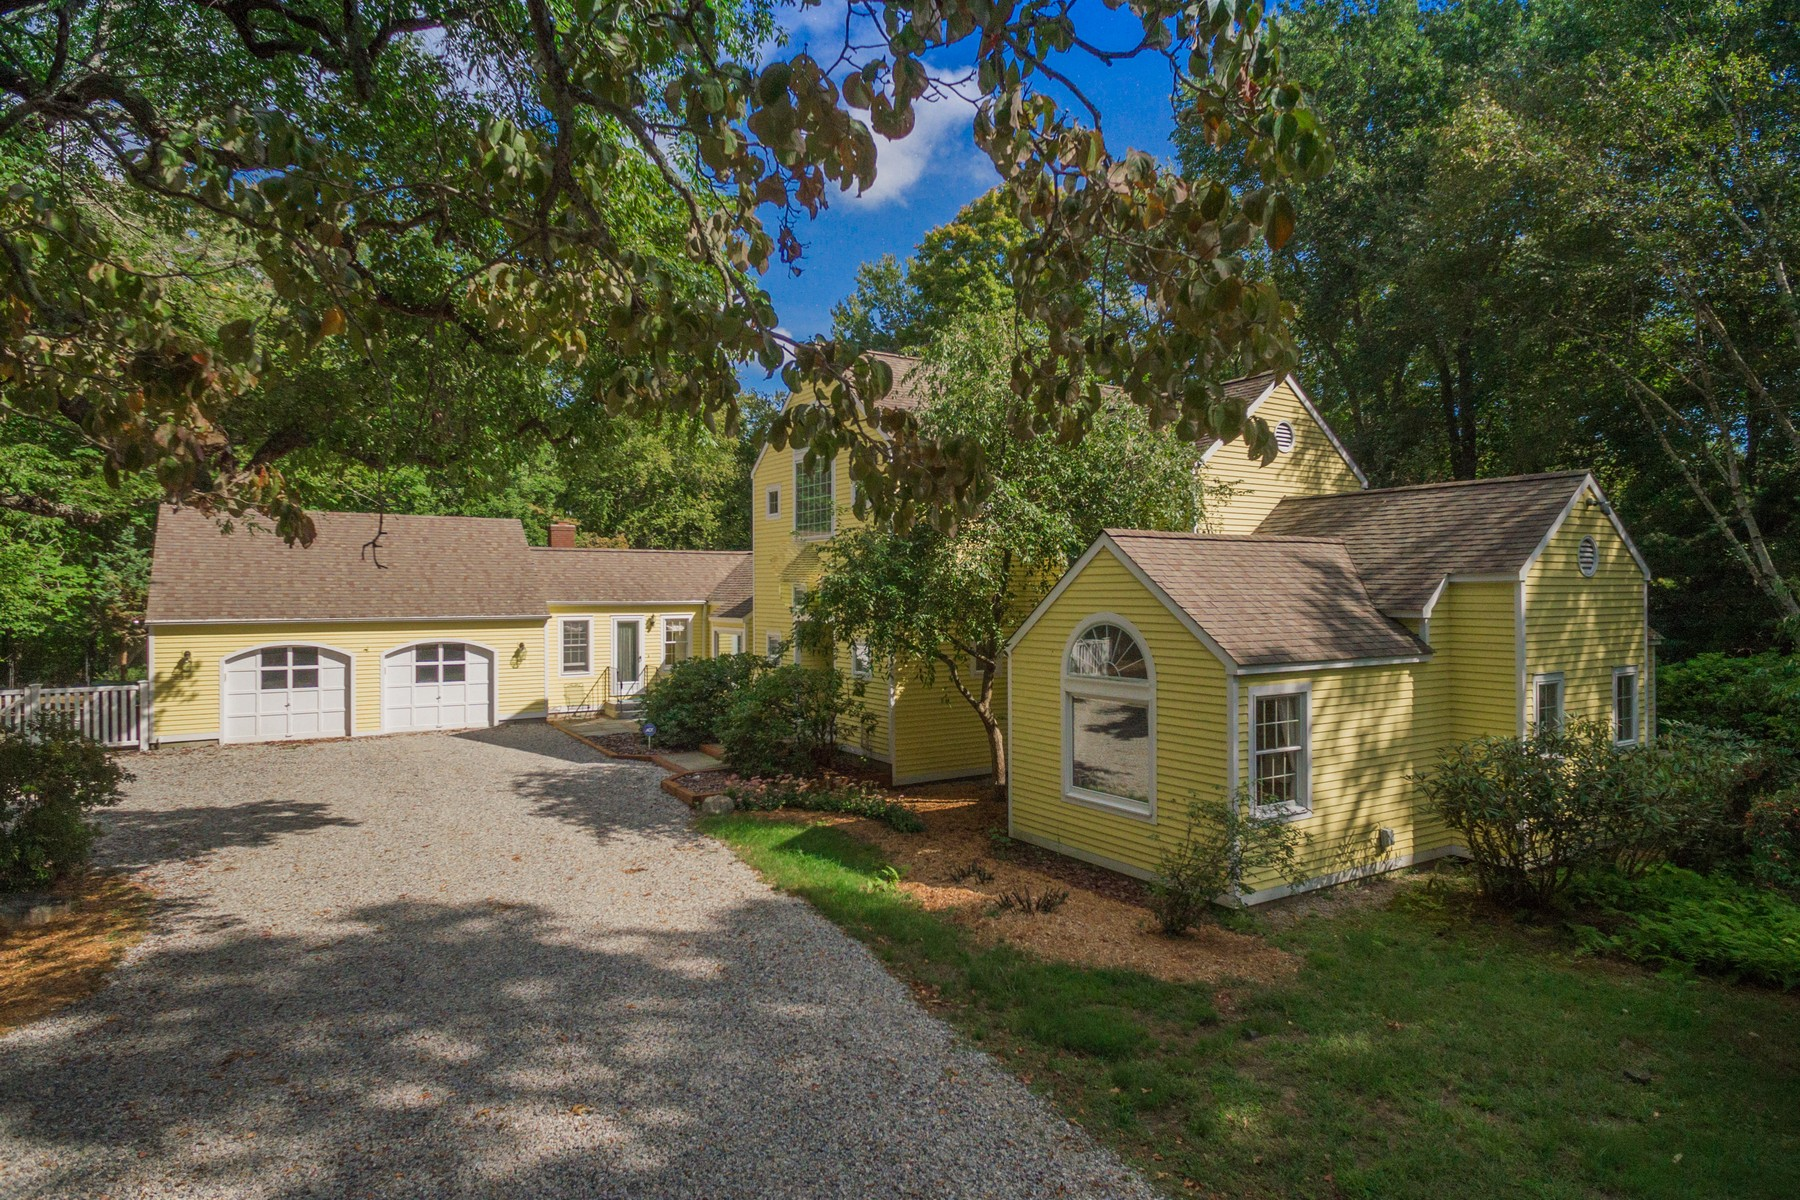 Single Family Home for Sale at Great For Entertaining 14 Riverbend Rd Old Lyme, Connecticut, 06371 United States